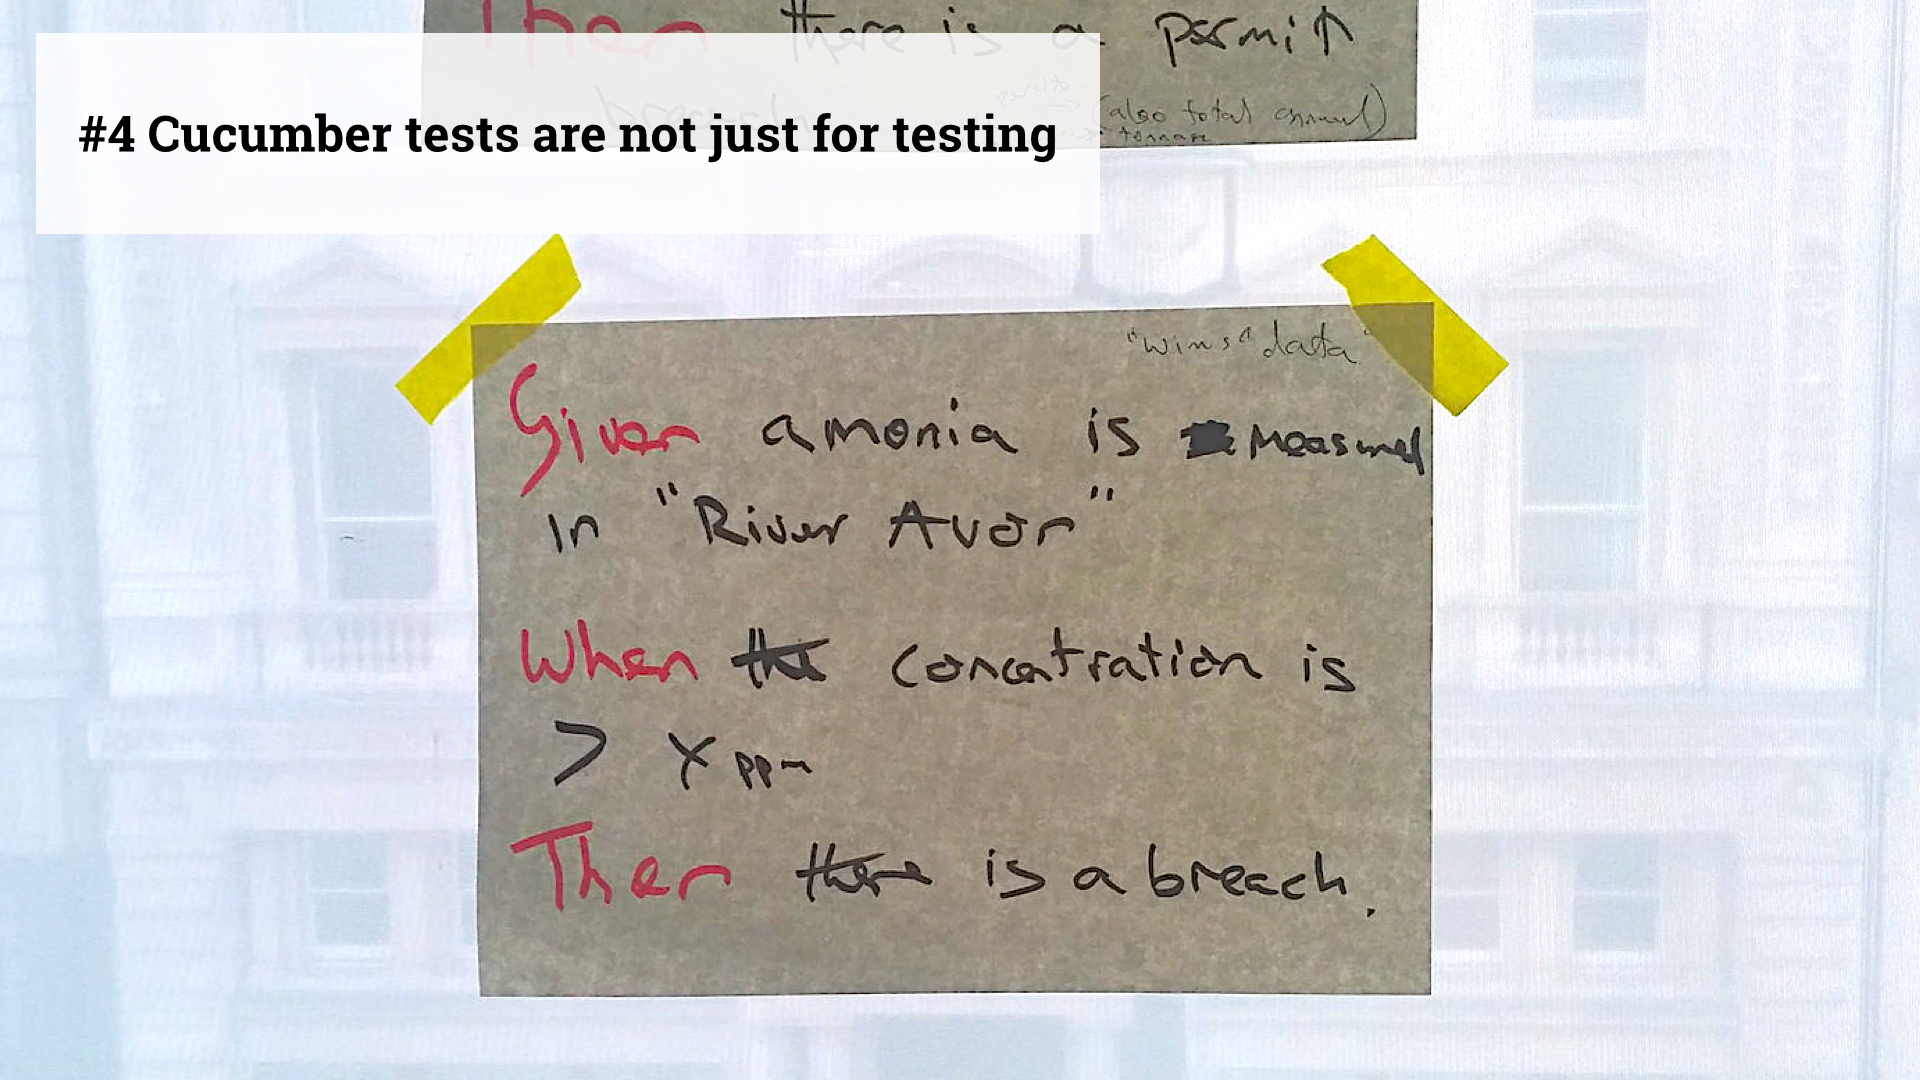 Slide 5 - Cucumber tests are not just for testing - photo of hand written cucumber test about ammonia levels in the River Avon